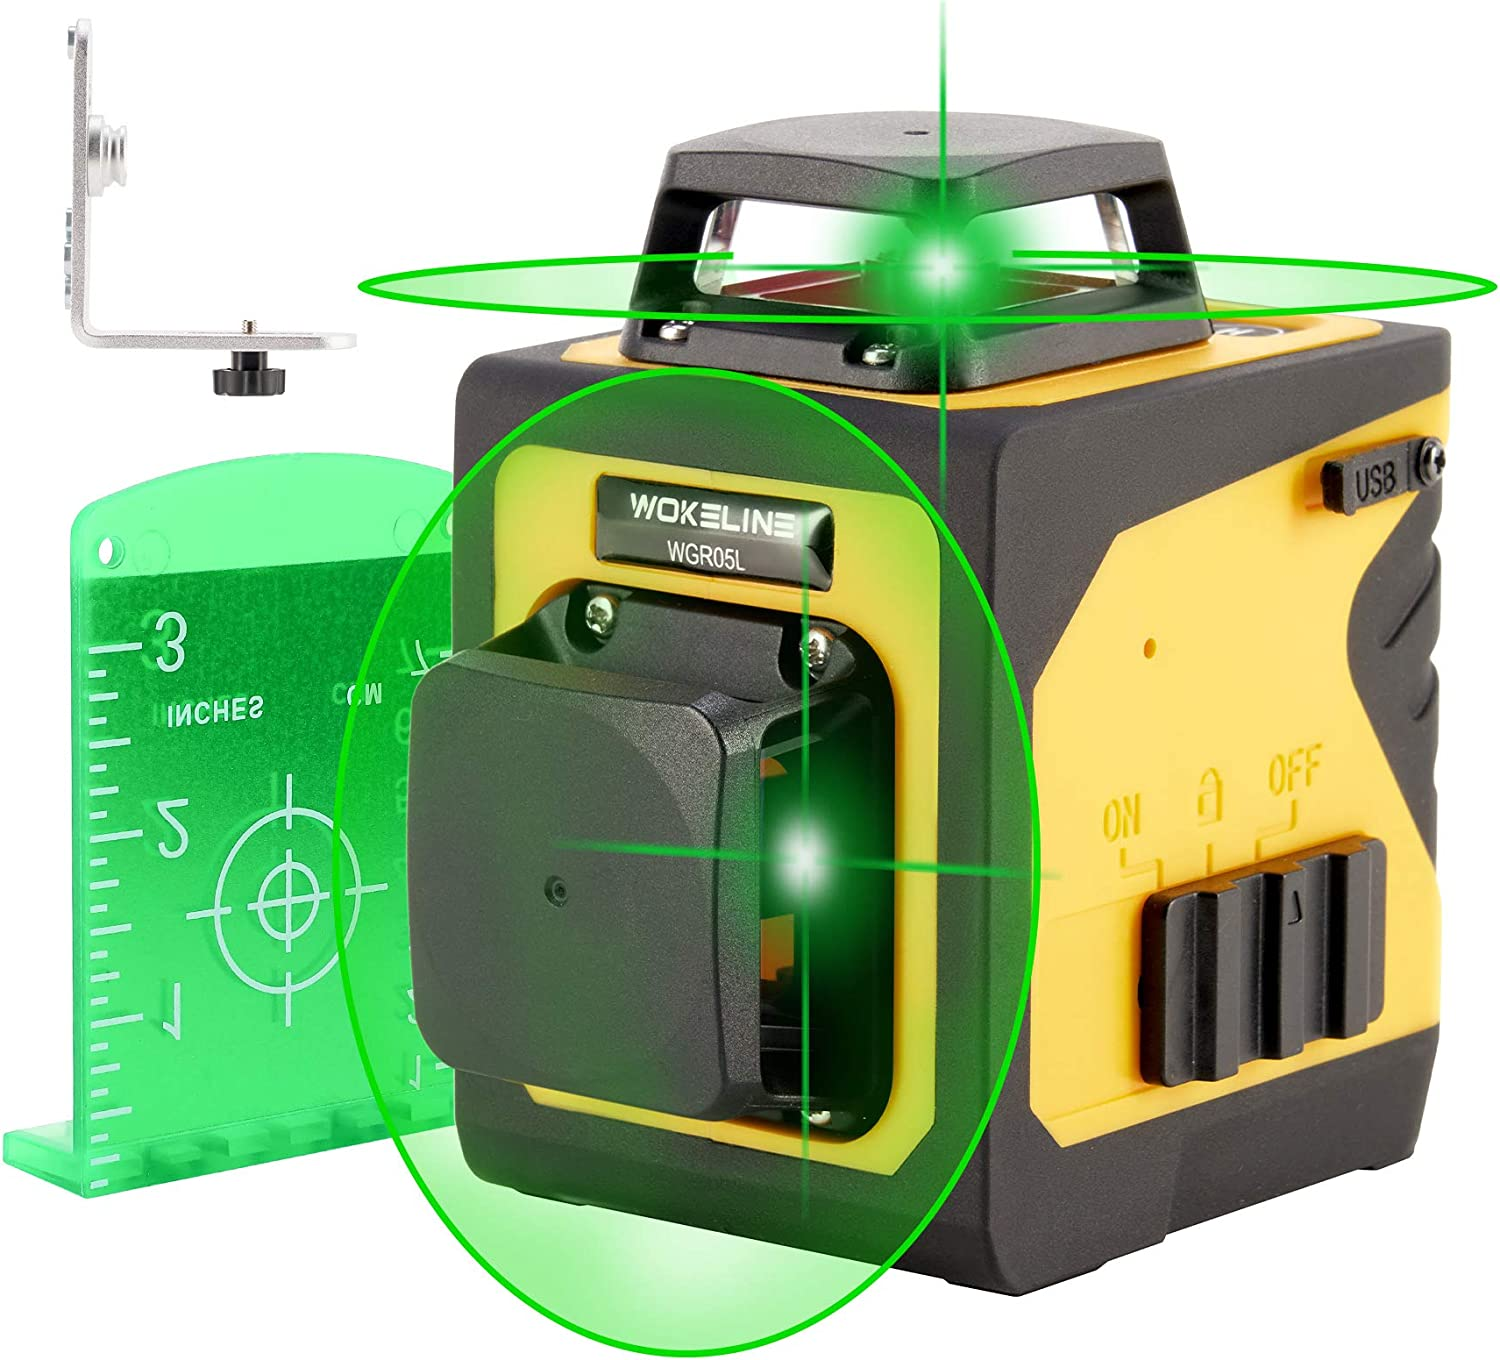 Green Laser Level for Indoor Outdoor Work, 360 Leveler with 4 Horizontal 4 Vertical Lines, Professional Self Leveling Laser Tool for Home Construction with USB Recharging, Laser Level: CLASS II